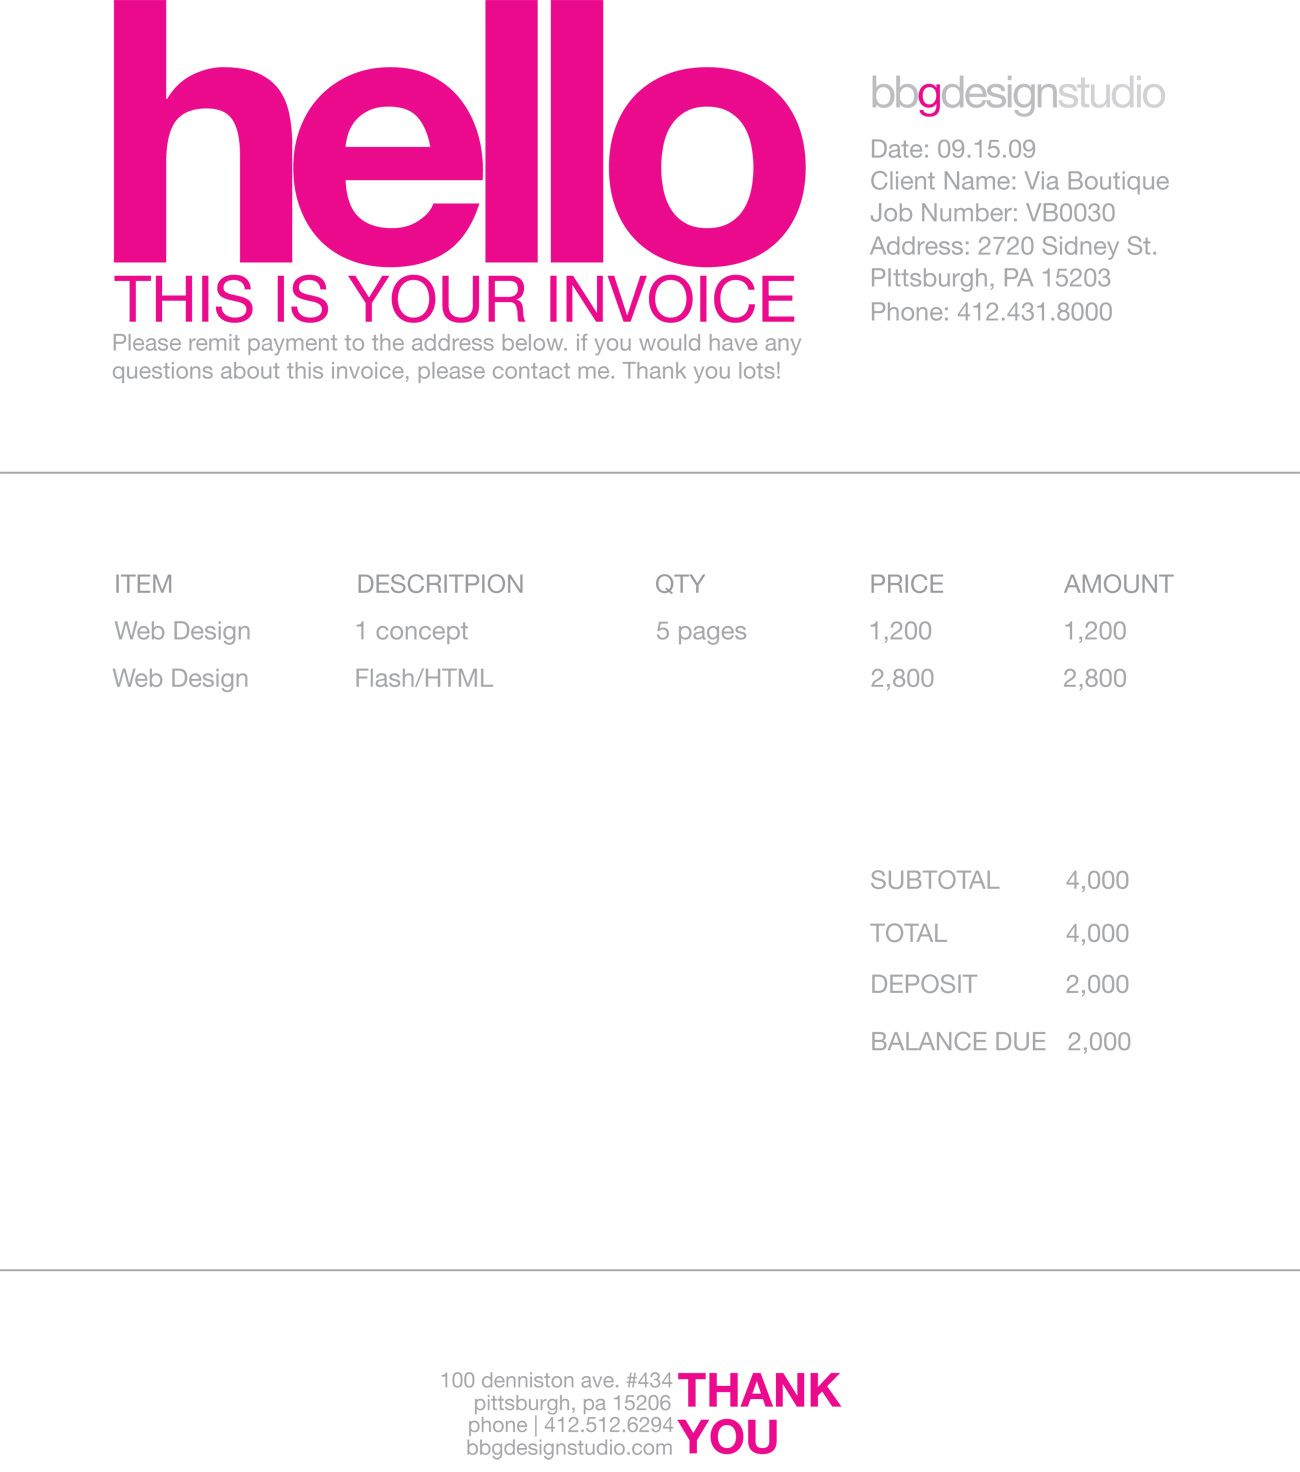 Laceychabertus  Unique  Images About Invoice Design On Pinterest With Glamorous Pronunciation Of Receipt Besides Petition Receipt Number Furthermore Apartment Rental Receipt Template With Endearing Receipt Printing Software Free Download Also Rent Receipt Template Uk In Addition Bpa Thermal Paper Receipts And Goodwill Donation Receipt Form As Well As Receipts For Rent Payments Additionally Blank Sales Receipt Template From Pinterestcom With Laceychabertus  Glamorous  Images About Invoice Design On Pinterest With Endearing Pronunciation Of Receipt Besides Petition Receipt Number Furthermore Apartment Rental Receipt Template And Unique Receipt Printing Software Free Download Also Rent Receipt Template Uk In Addition Bpa Thermal Paper Receipts From Pinterestcom